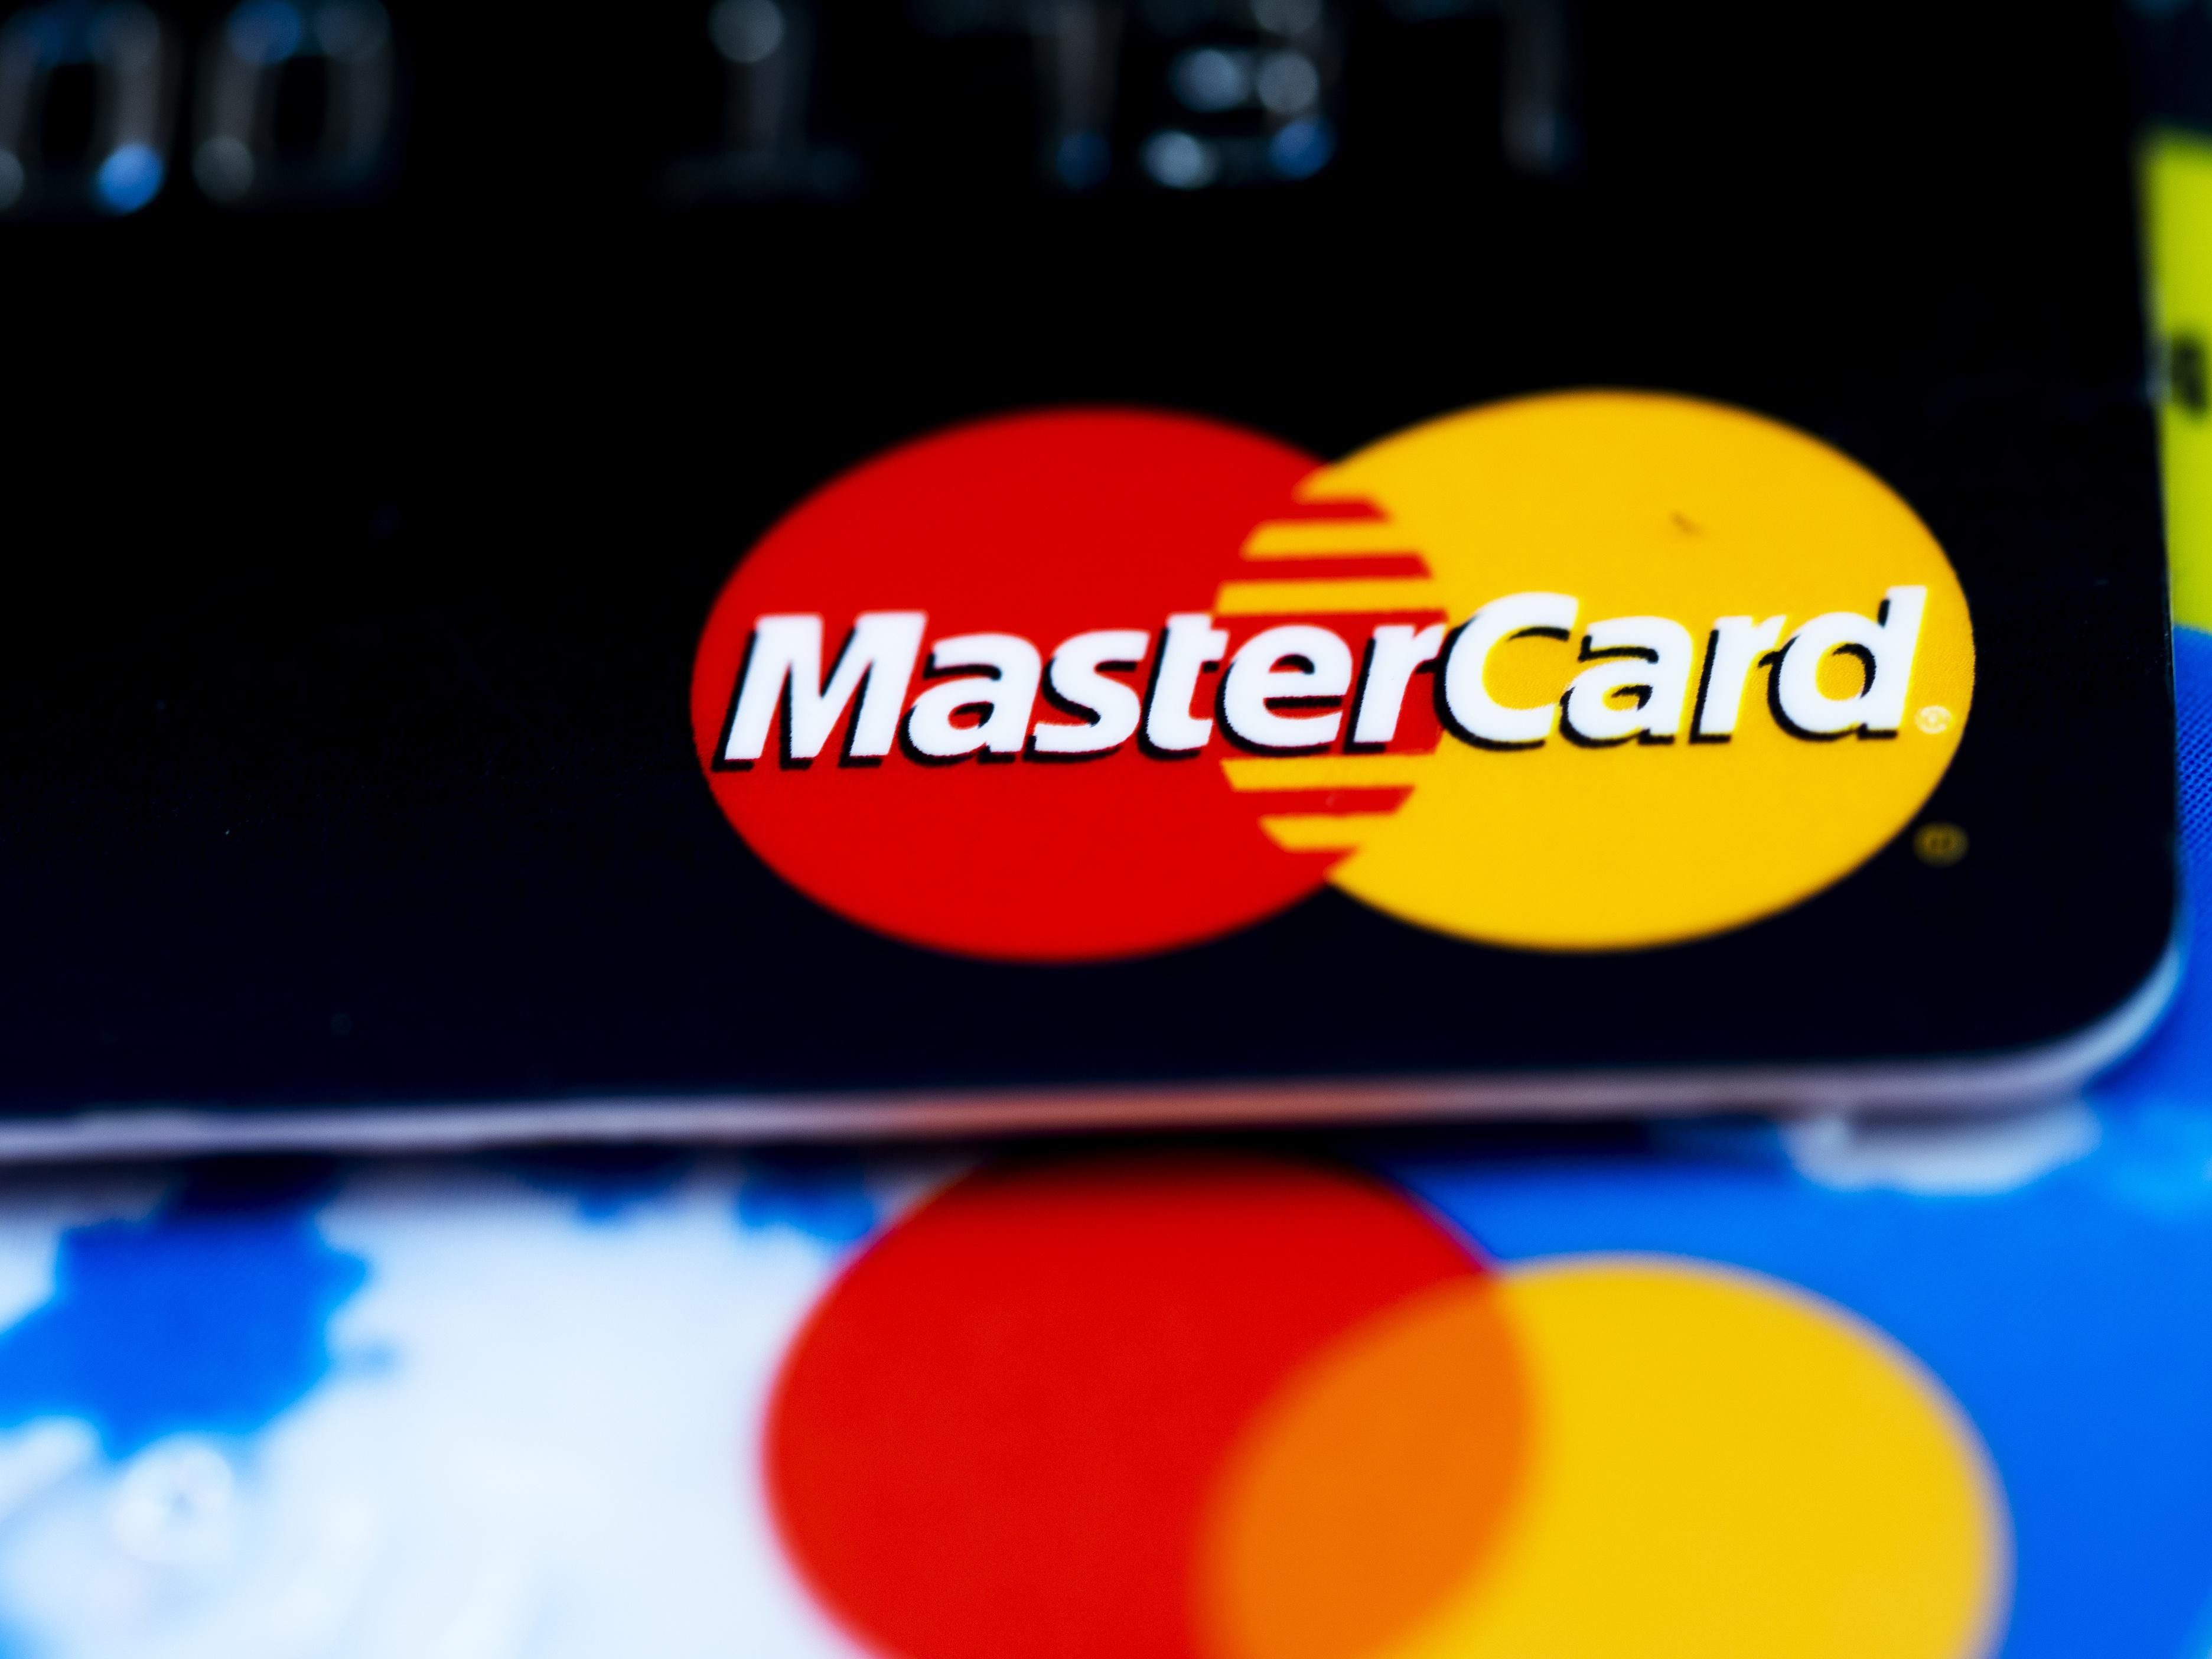 Forecast Of The Day: Mastercard's Payment Volume Per Card